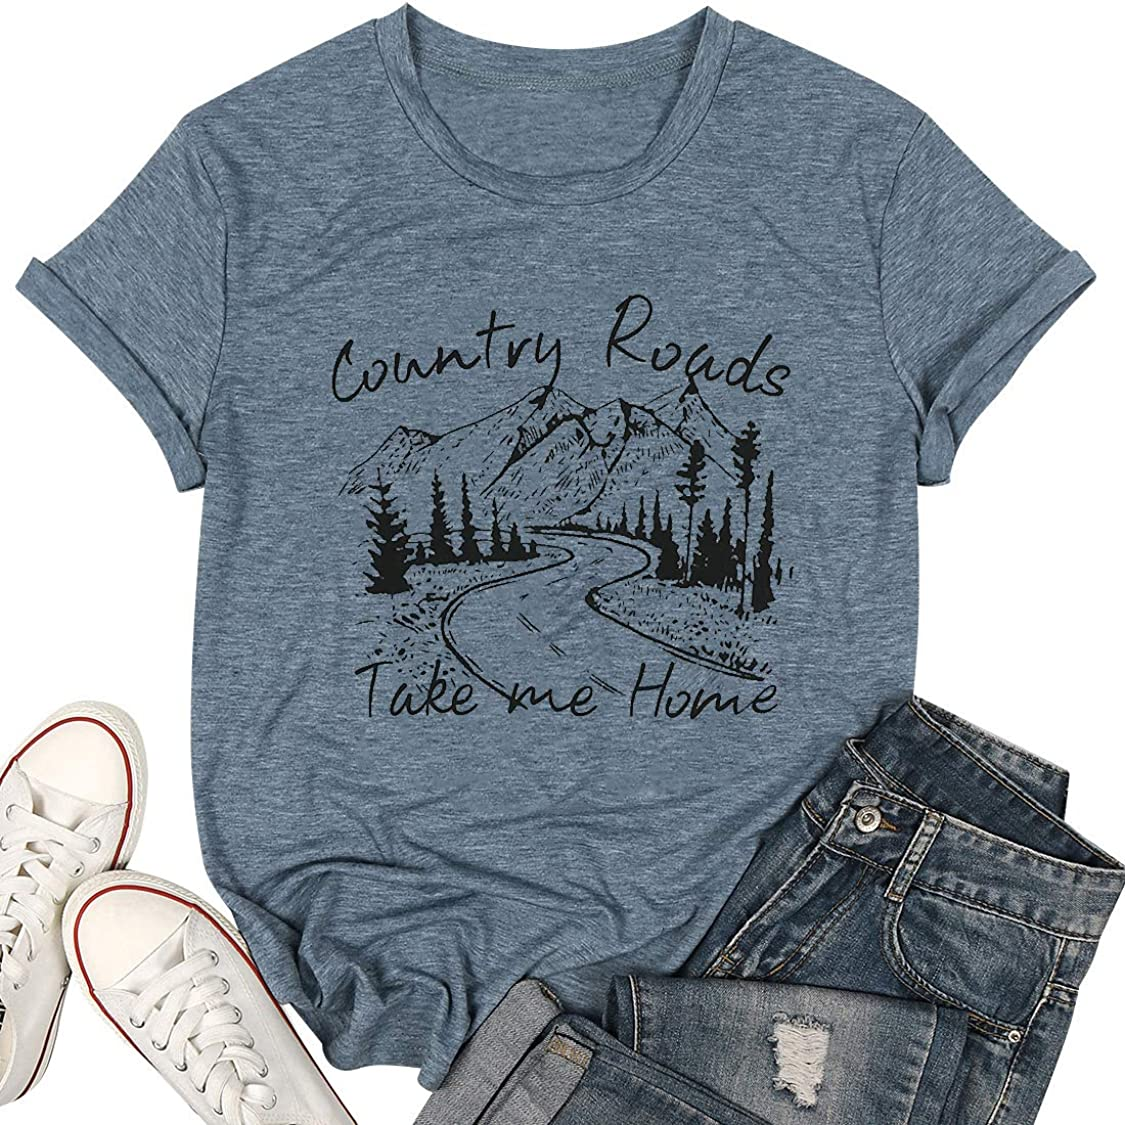 KIDDAD Womens Country Roads Take Me Home Shirt Letter Print Graphic T Shirt Country Music Casual Tees Tops Blouse